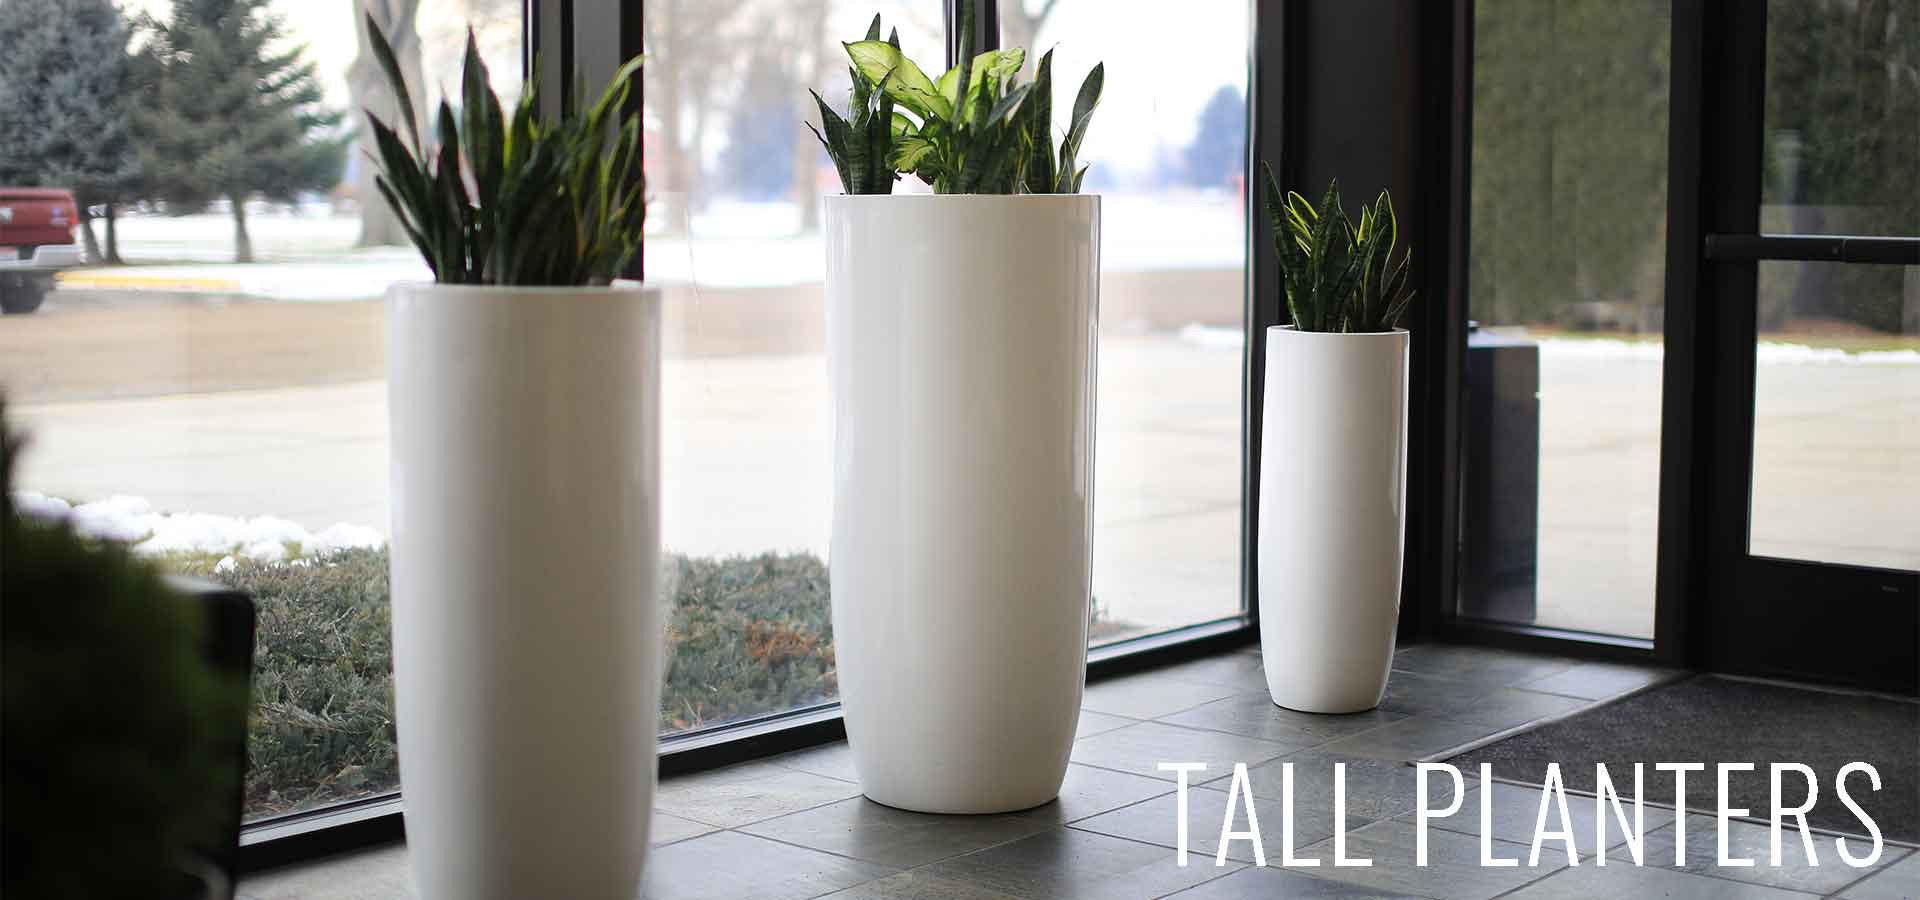 modern planter twista tall contemporary inch modern outdoor  - modern planter pots boxes stylish plant containers wholesale tall whiteplanters